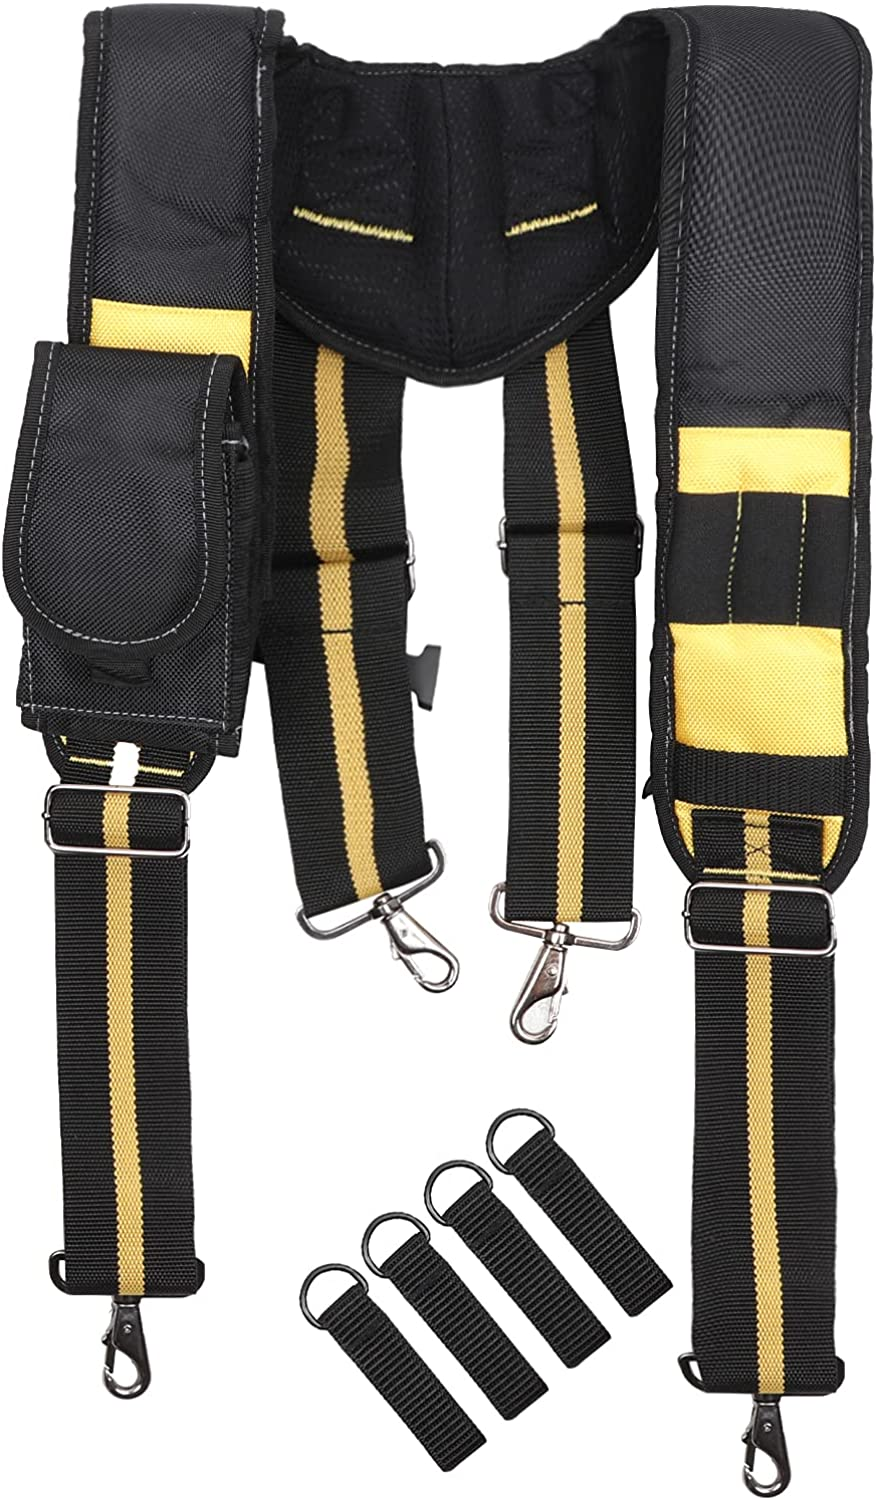 Ultra-Cheap Deals Tool Belt Suspenders Padded Belts with Phone Suitable Bag OFFicial site